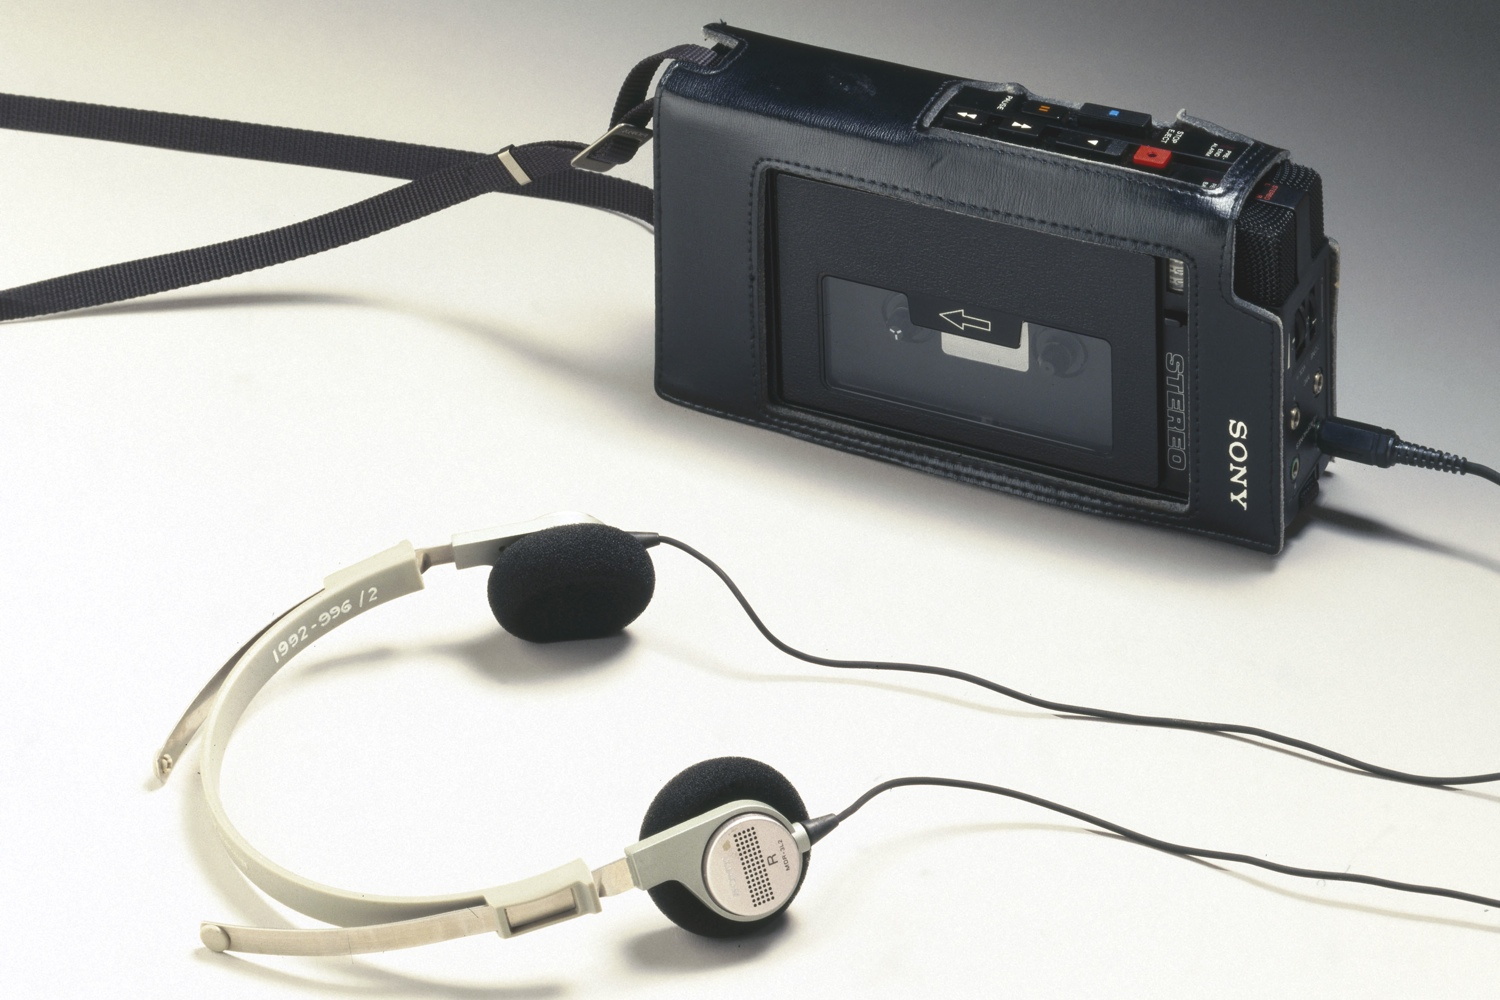 The original 'Walkman', model TCS 300, made by Sony of Japan. The TCS 300 was the first personal stereo cassette recorder manufactured by Sony.